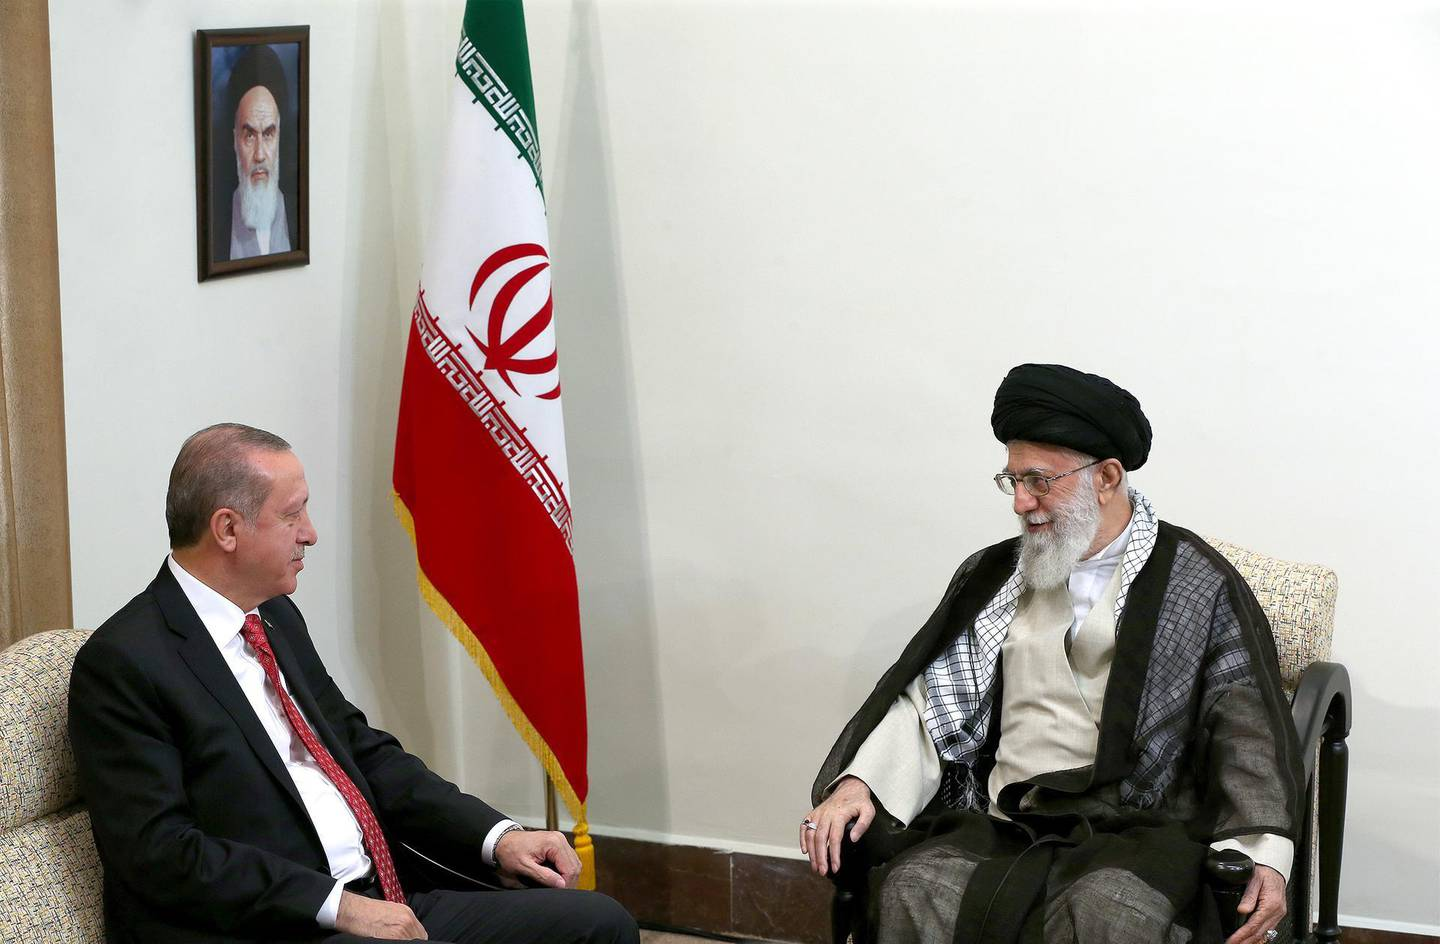 In this photo released by an official website of the office of the Iranian supreme leader, Supreme Leader Ayatollah Ali Khamenei, right, meets with Turkish President Recep Tayyip Erdogan, in Tehran, Iran, Wednesday, Oct. 4, 2017. (Office of the Iranian Supreme Leader via AP)